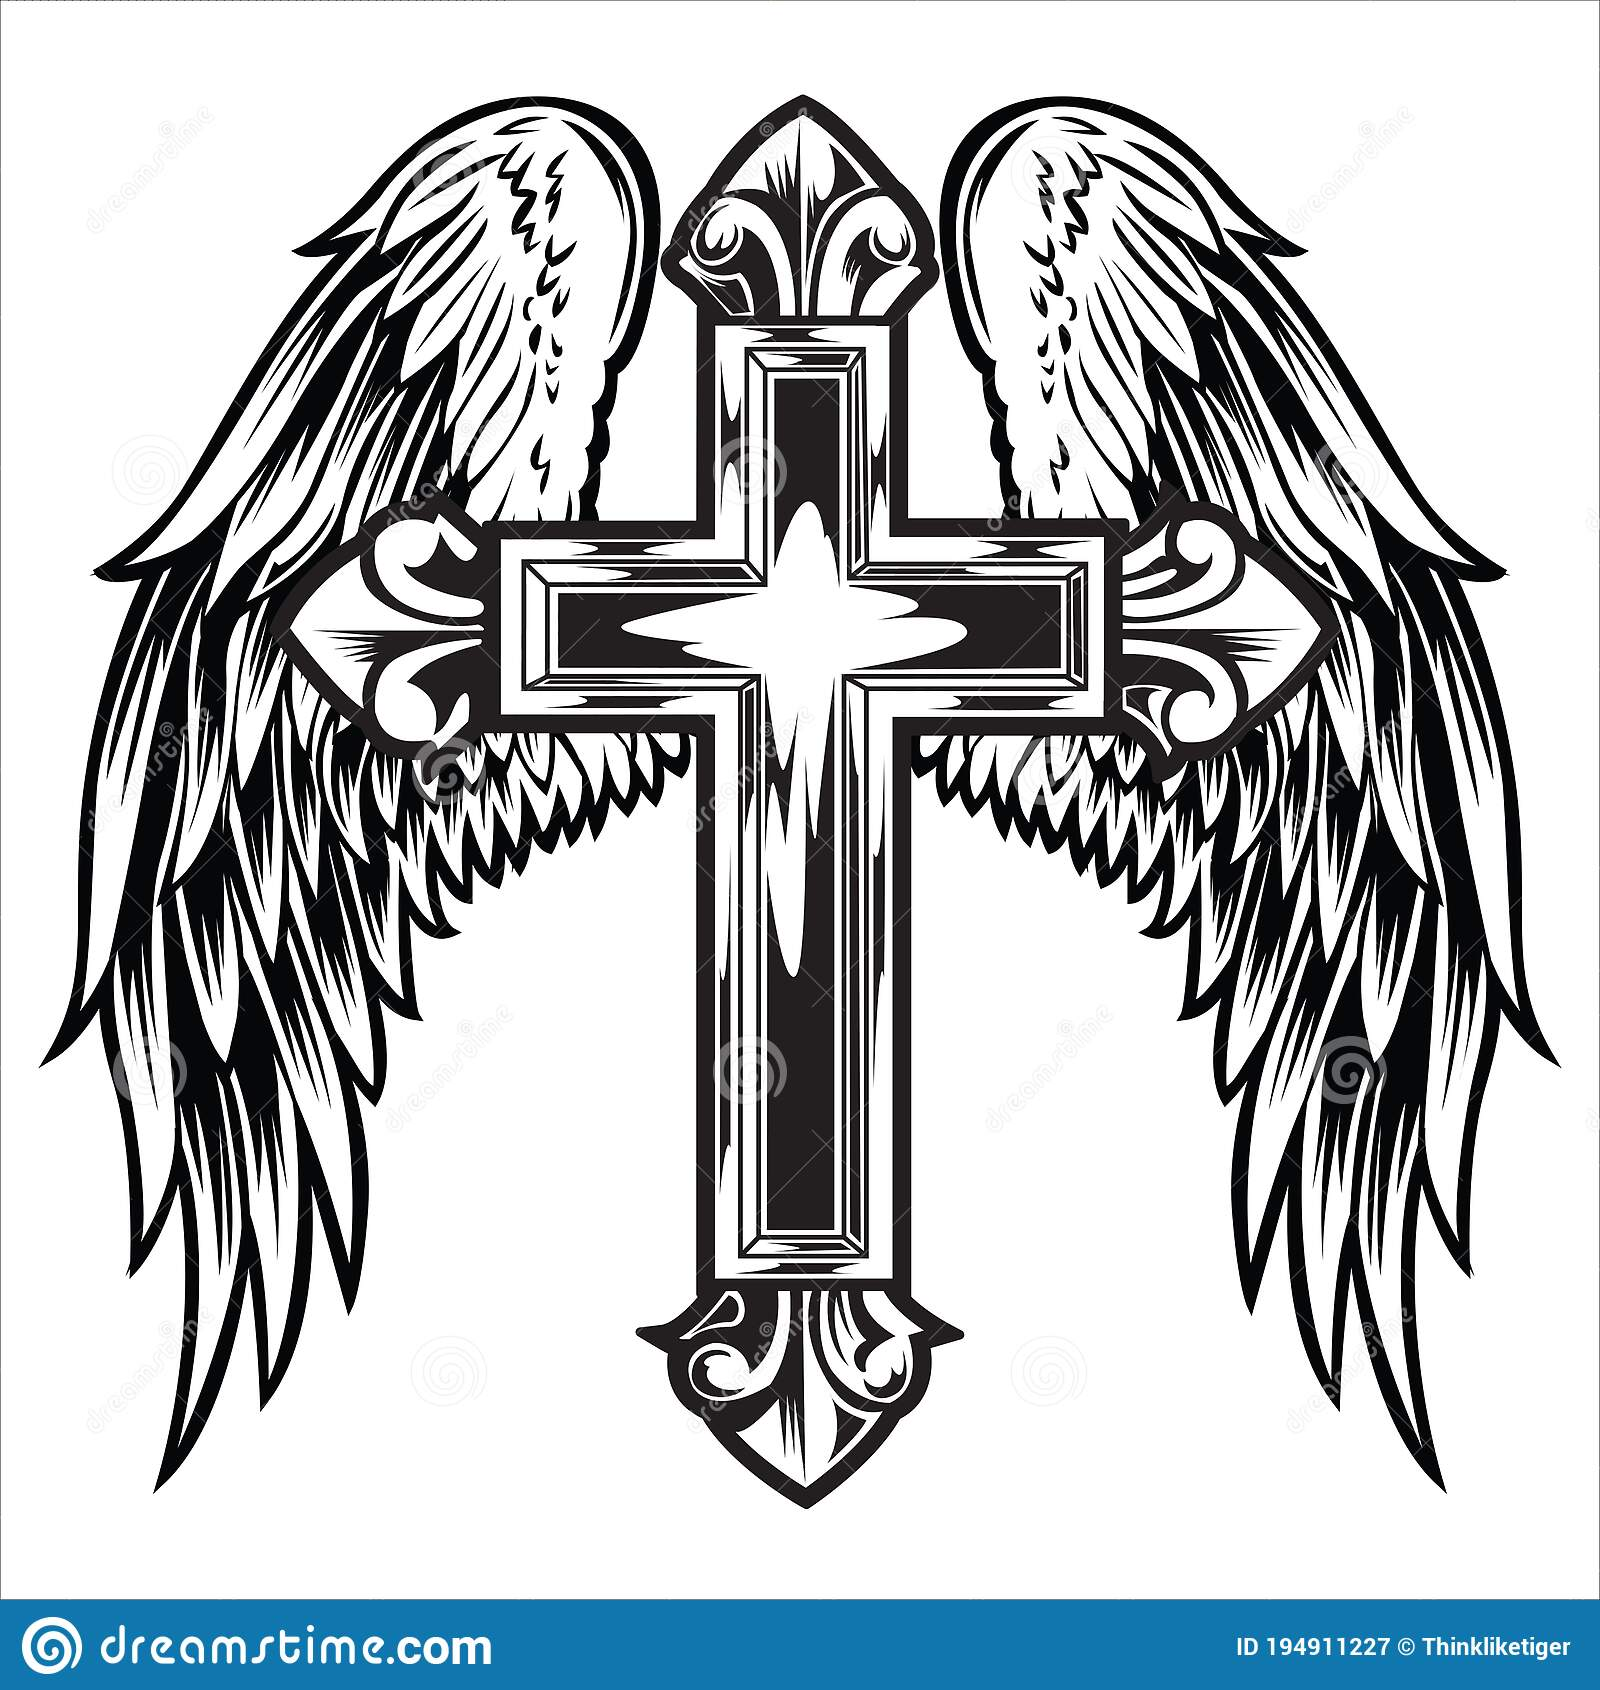 Christian clipart african american, Christian african american Transparent  FREE for download on WebStockReview 2020